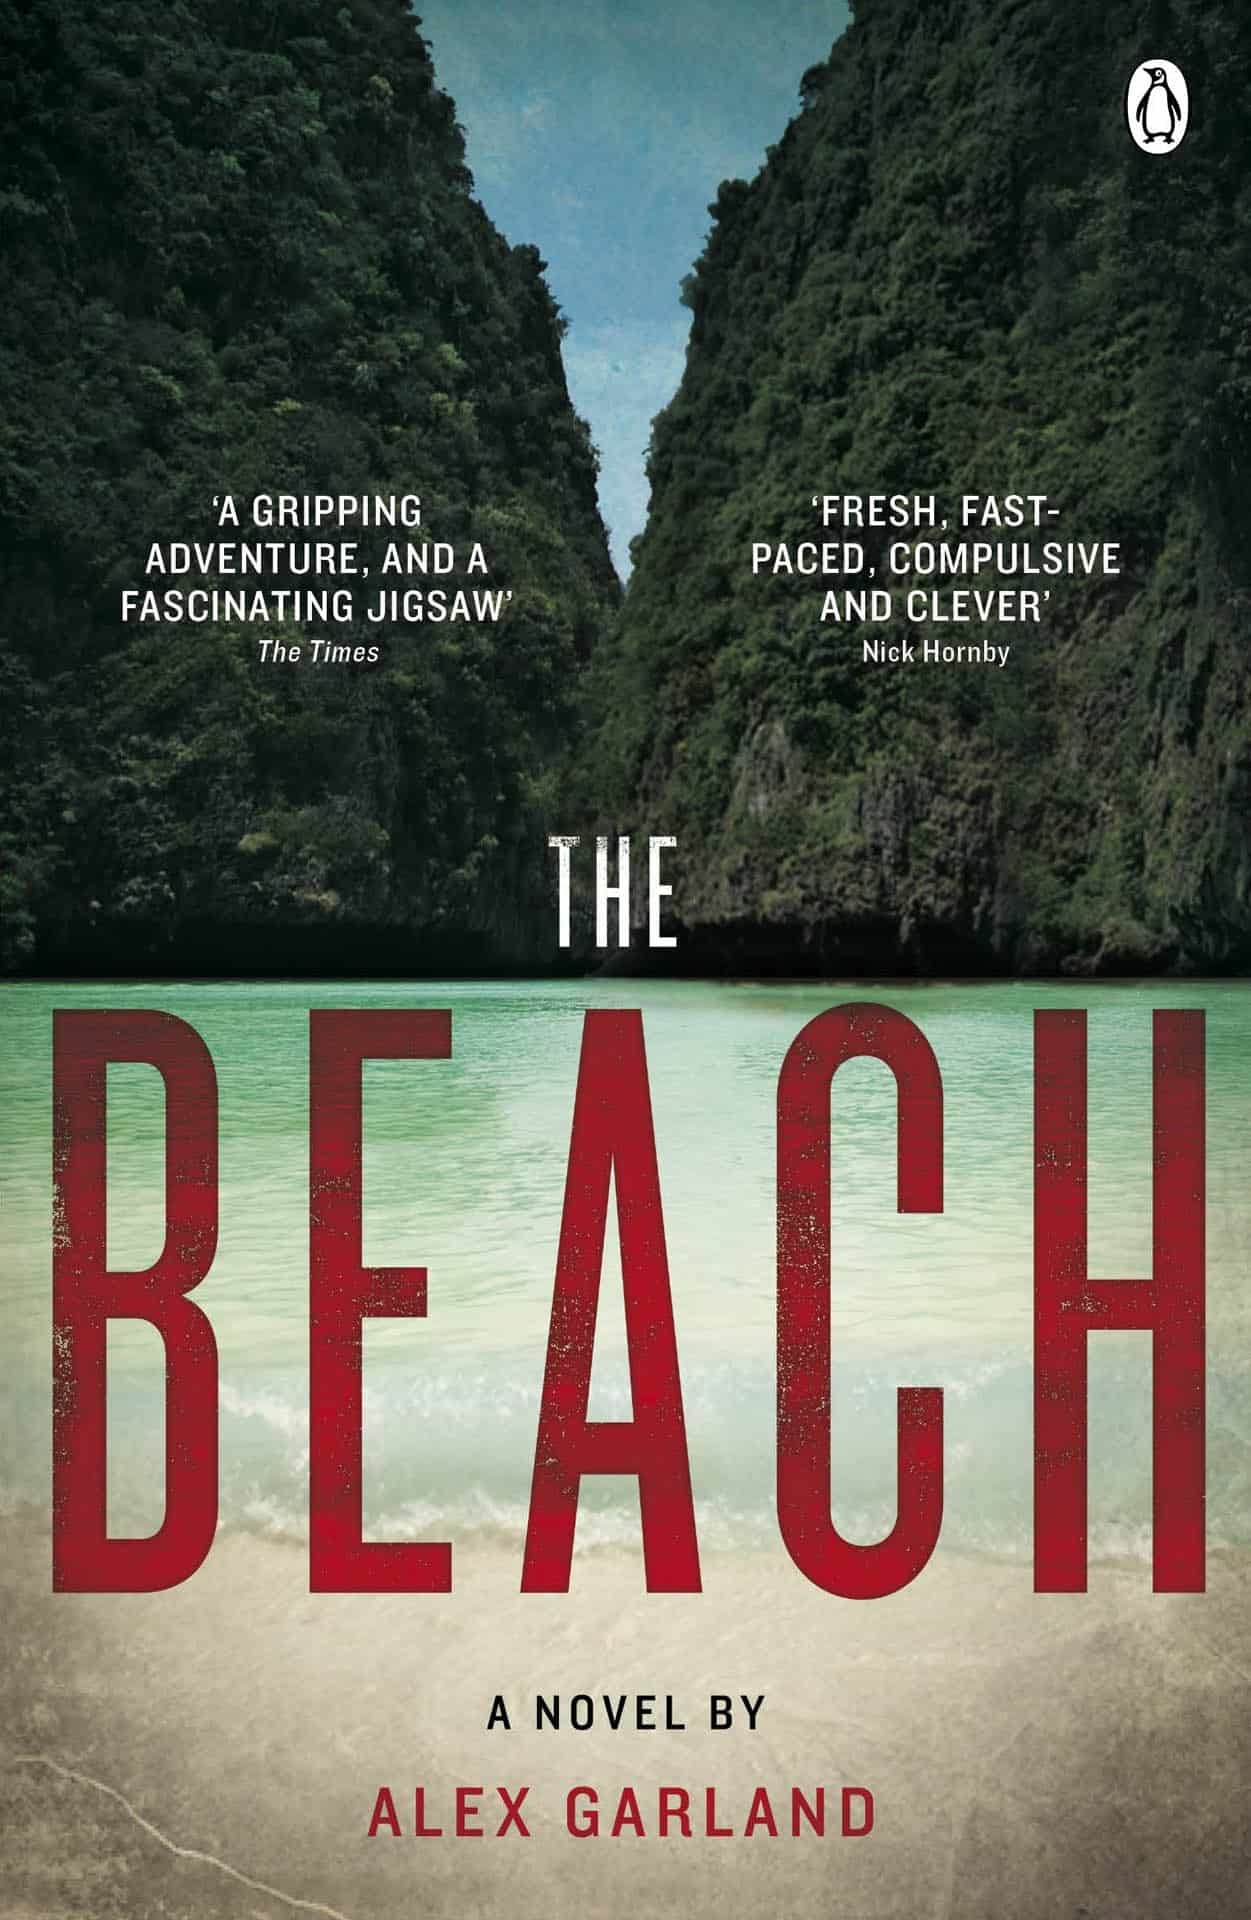 The Beach by Alex Garland is one of the best books for travelling to thailand